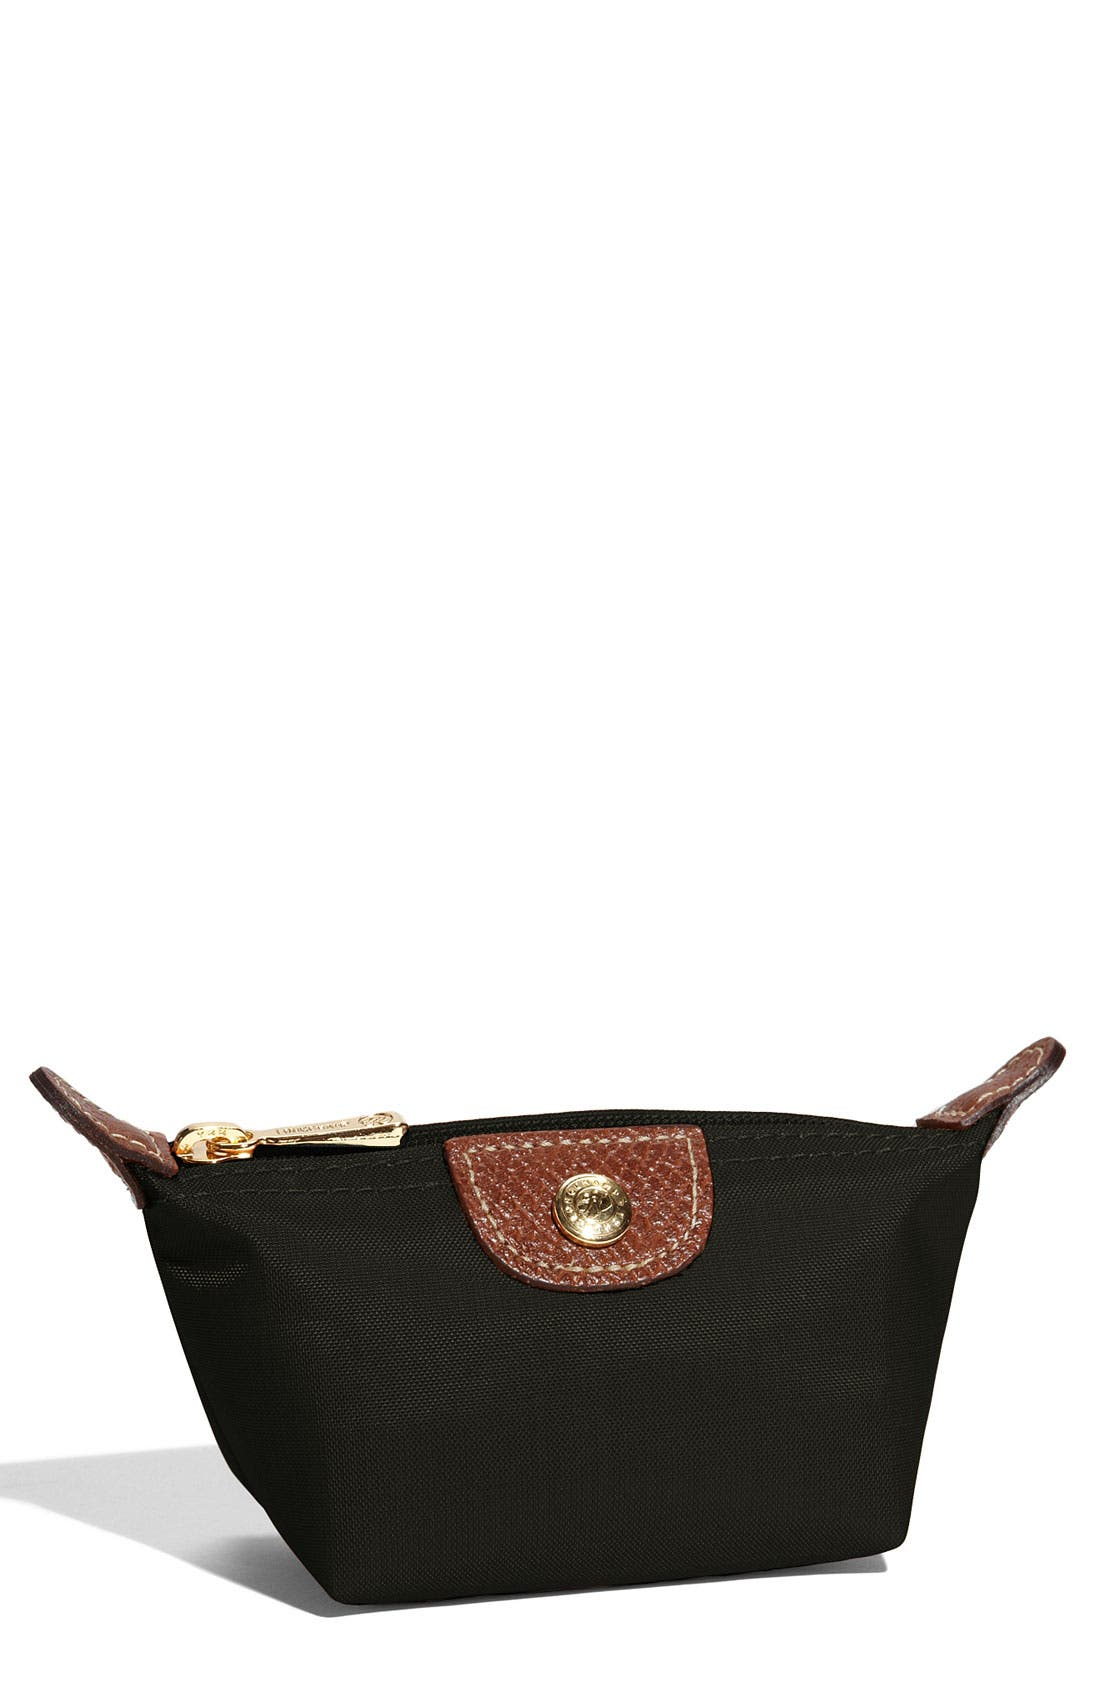 Longchamp 'Le Pliage' Coin Purse